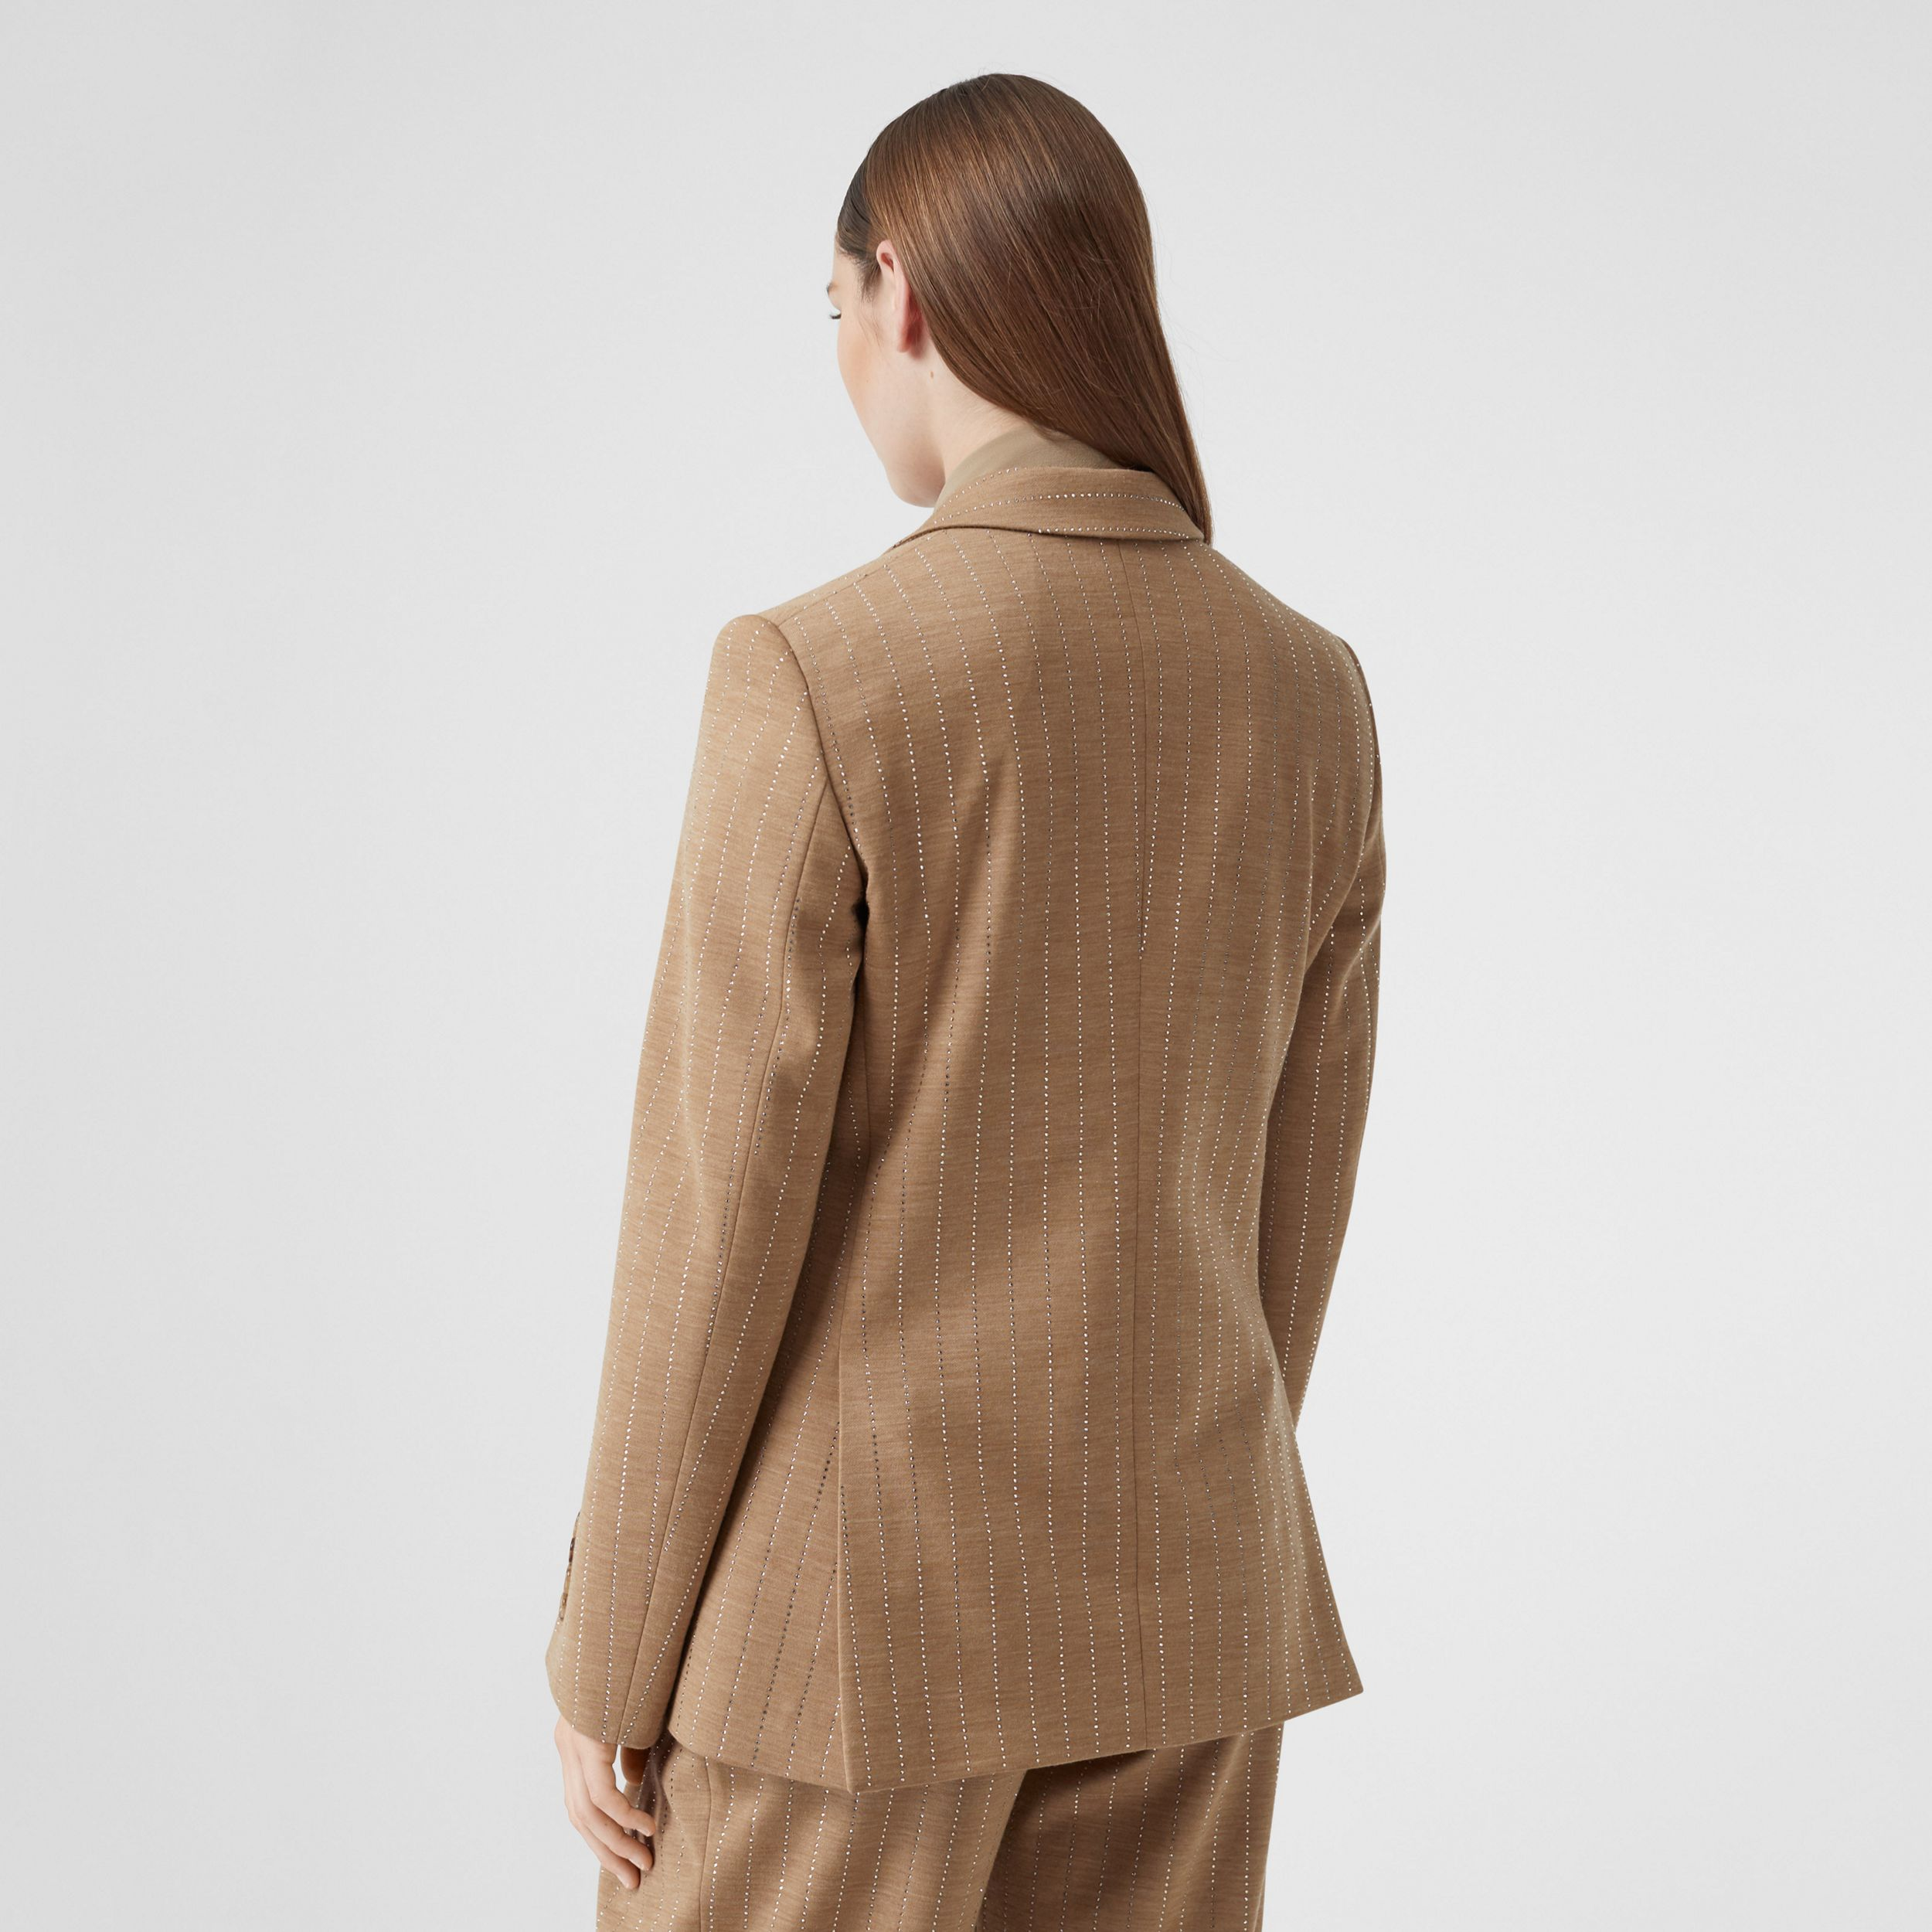 Crystal Pinstriped Technical Wool Jersey Blazer in Pecan Melange - Women | Burberry - 3